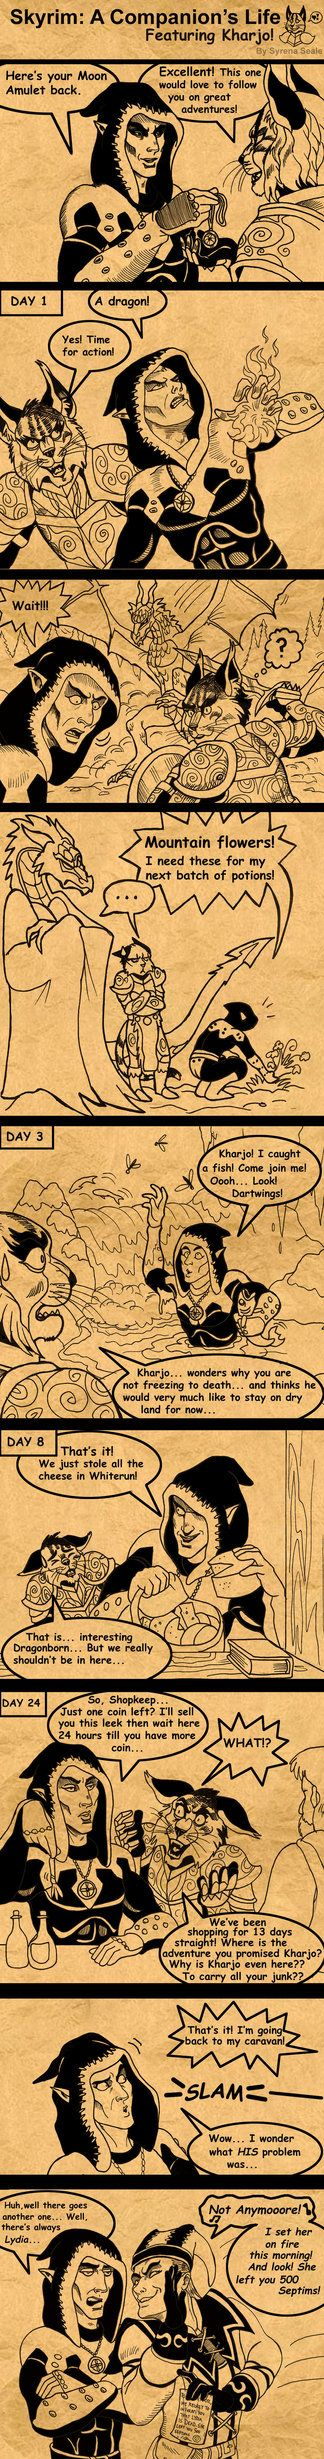 Skyrim A Companion's Life by =SlayerSyrena on deviantART